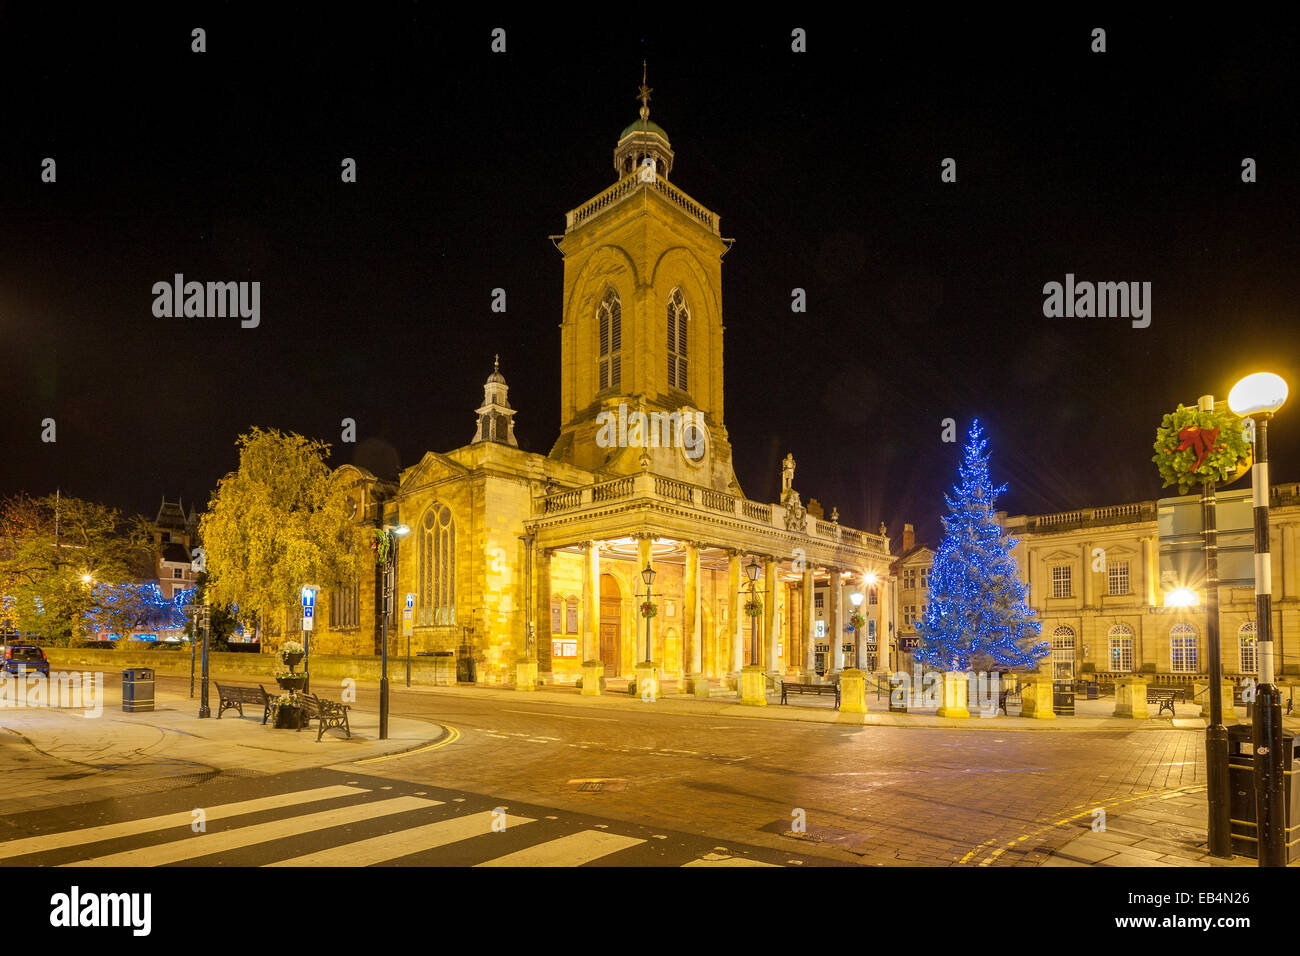 All Saints Church Northampton Town Centre in the early hours of the morning - Stock Image